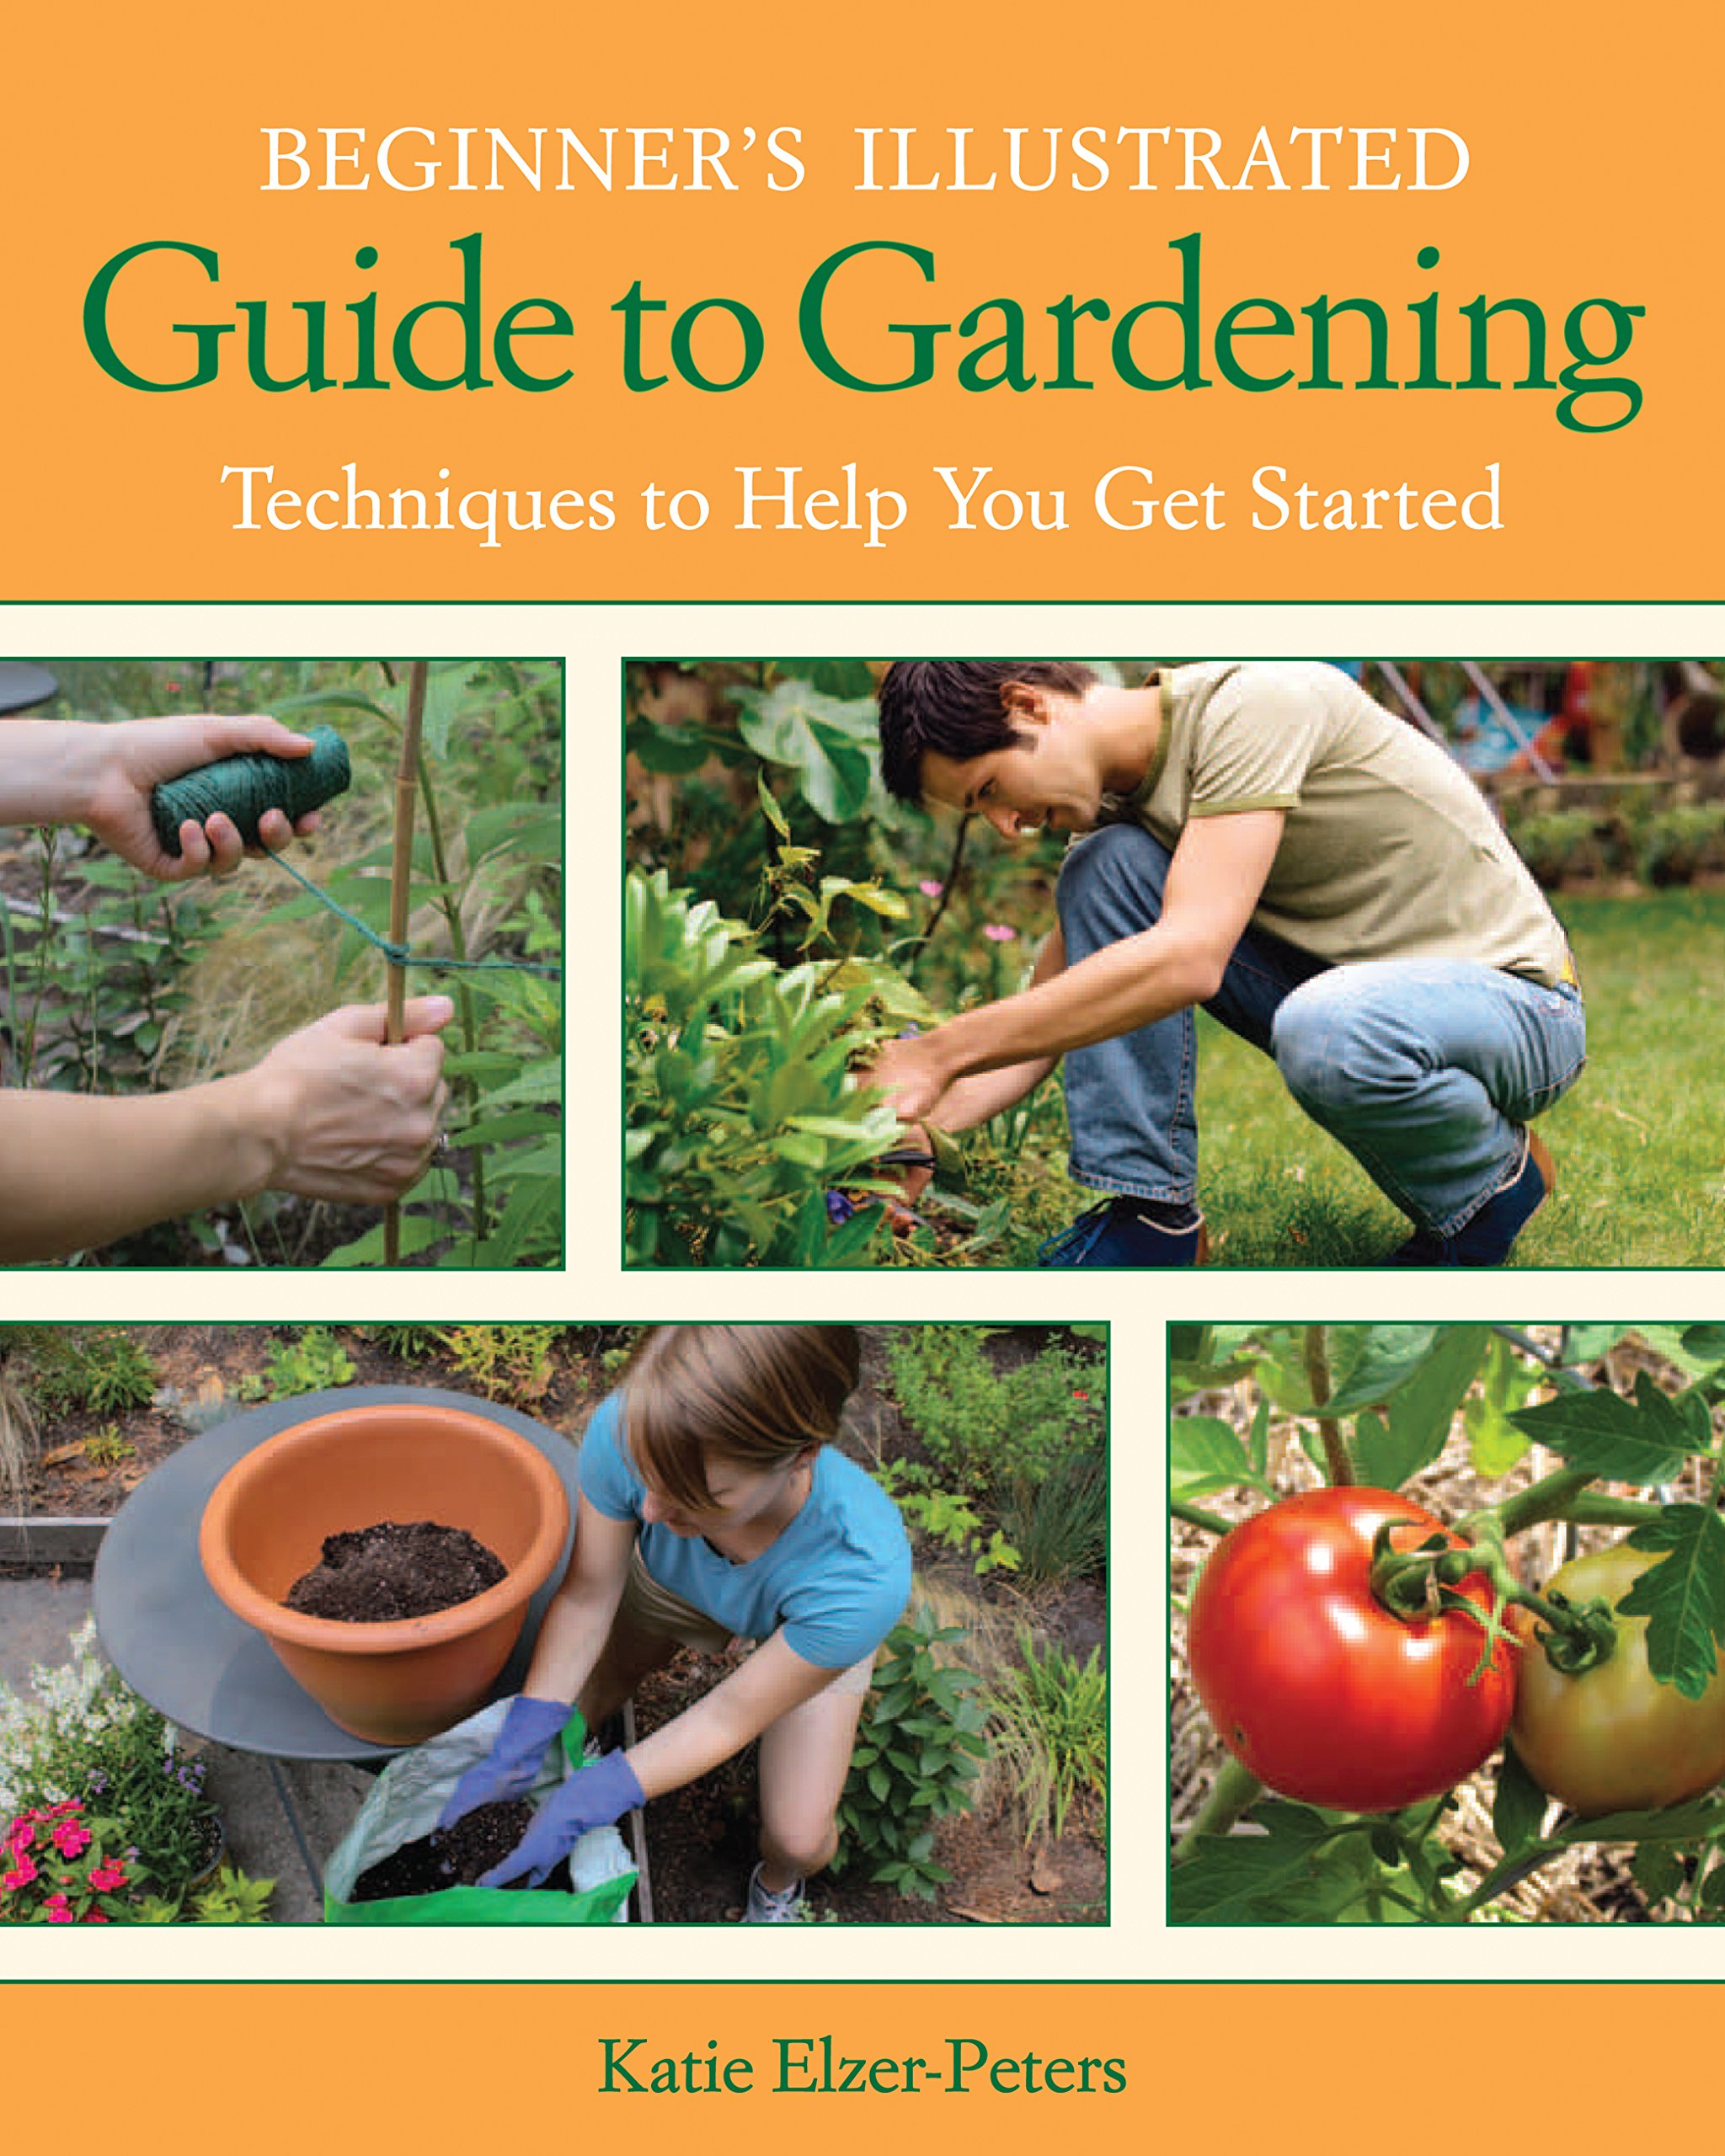 Beginner's Illustrated Guide to Gardening: Techniques to Help You Get Started PDF